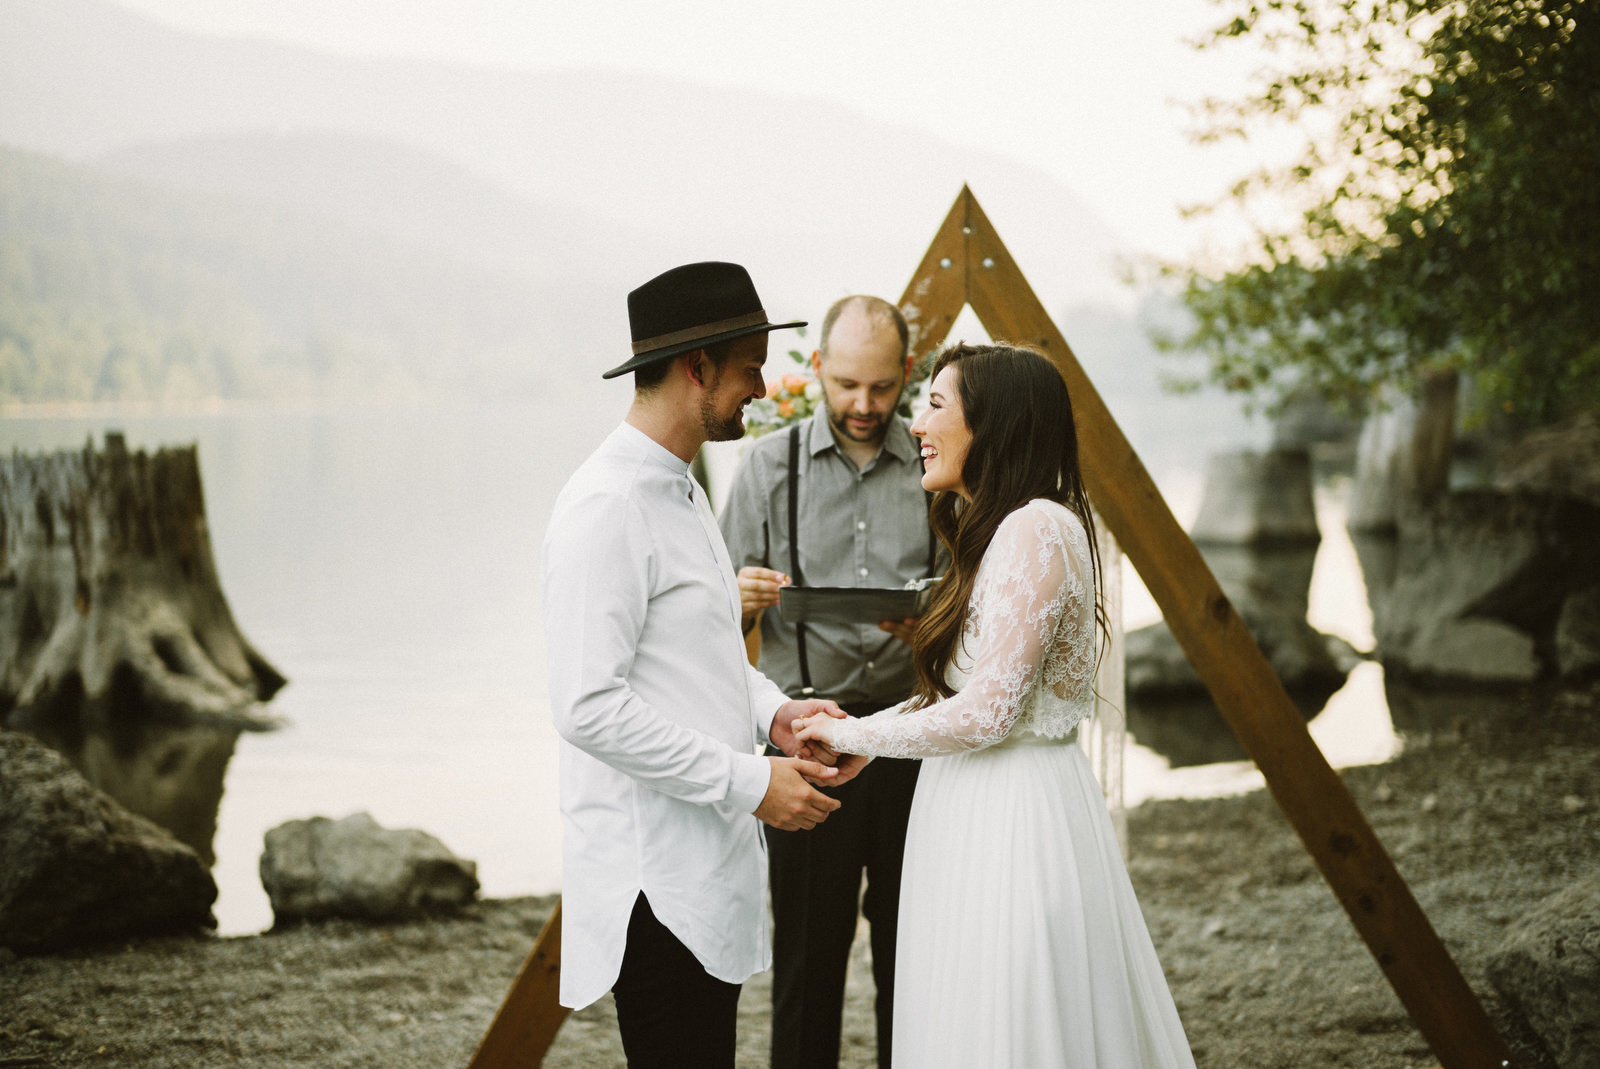 athena-and-camron-seattle-elopement-wedding-benj-haisch-rattlesnake-lake-christian-couple-goals52